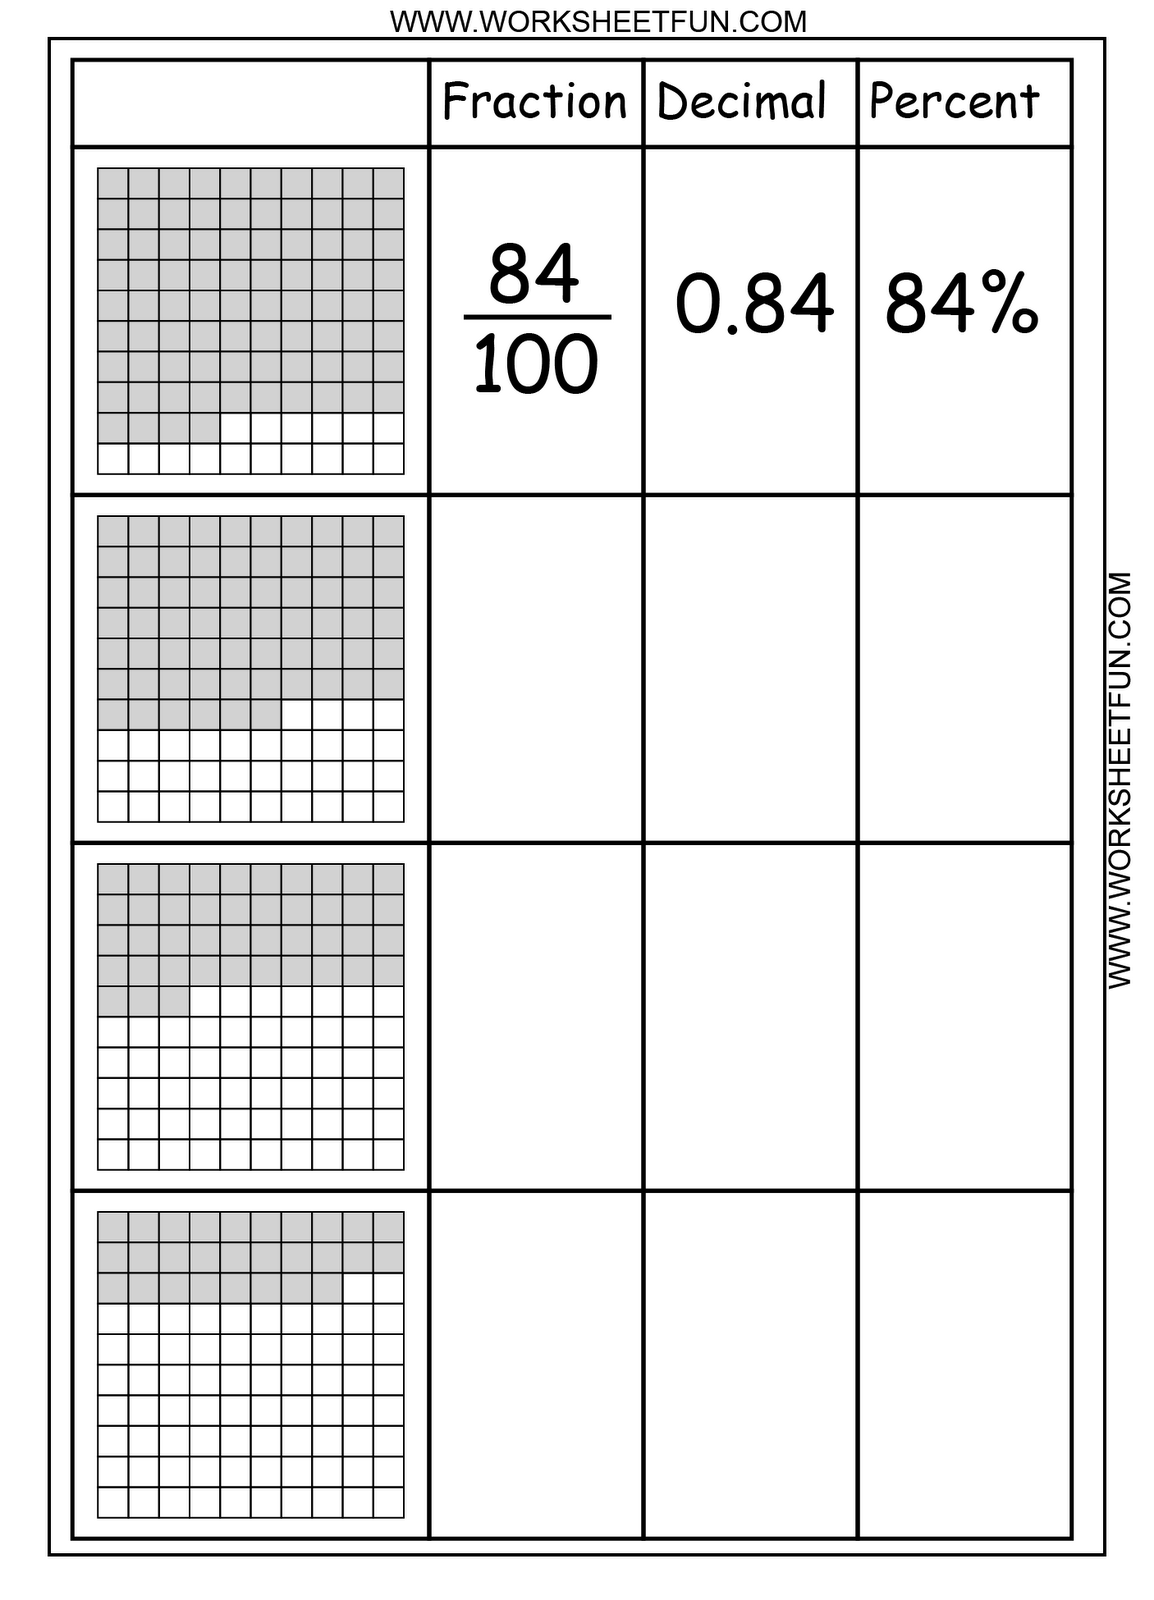 math worksheet : 1000 images about fractions decimals percents on pinterest  : Fraction Percent Decimal Worksheet